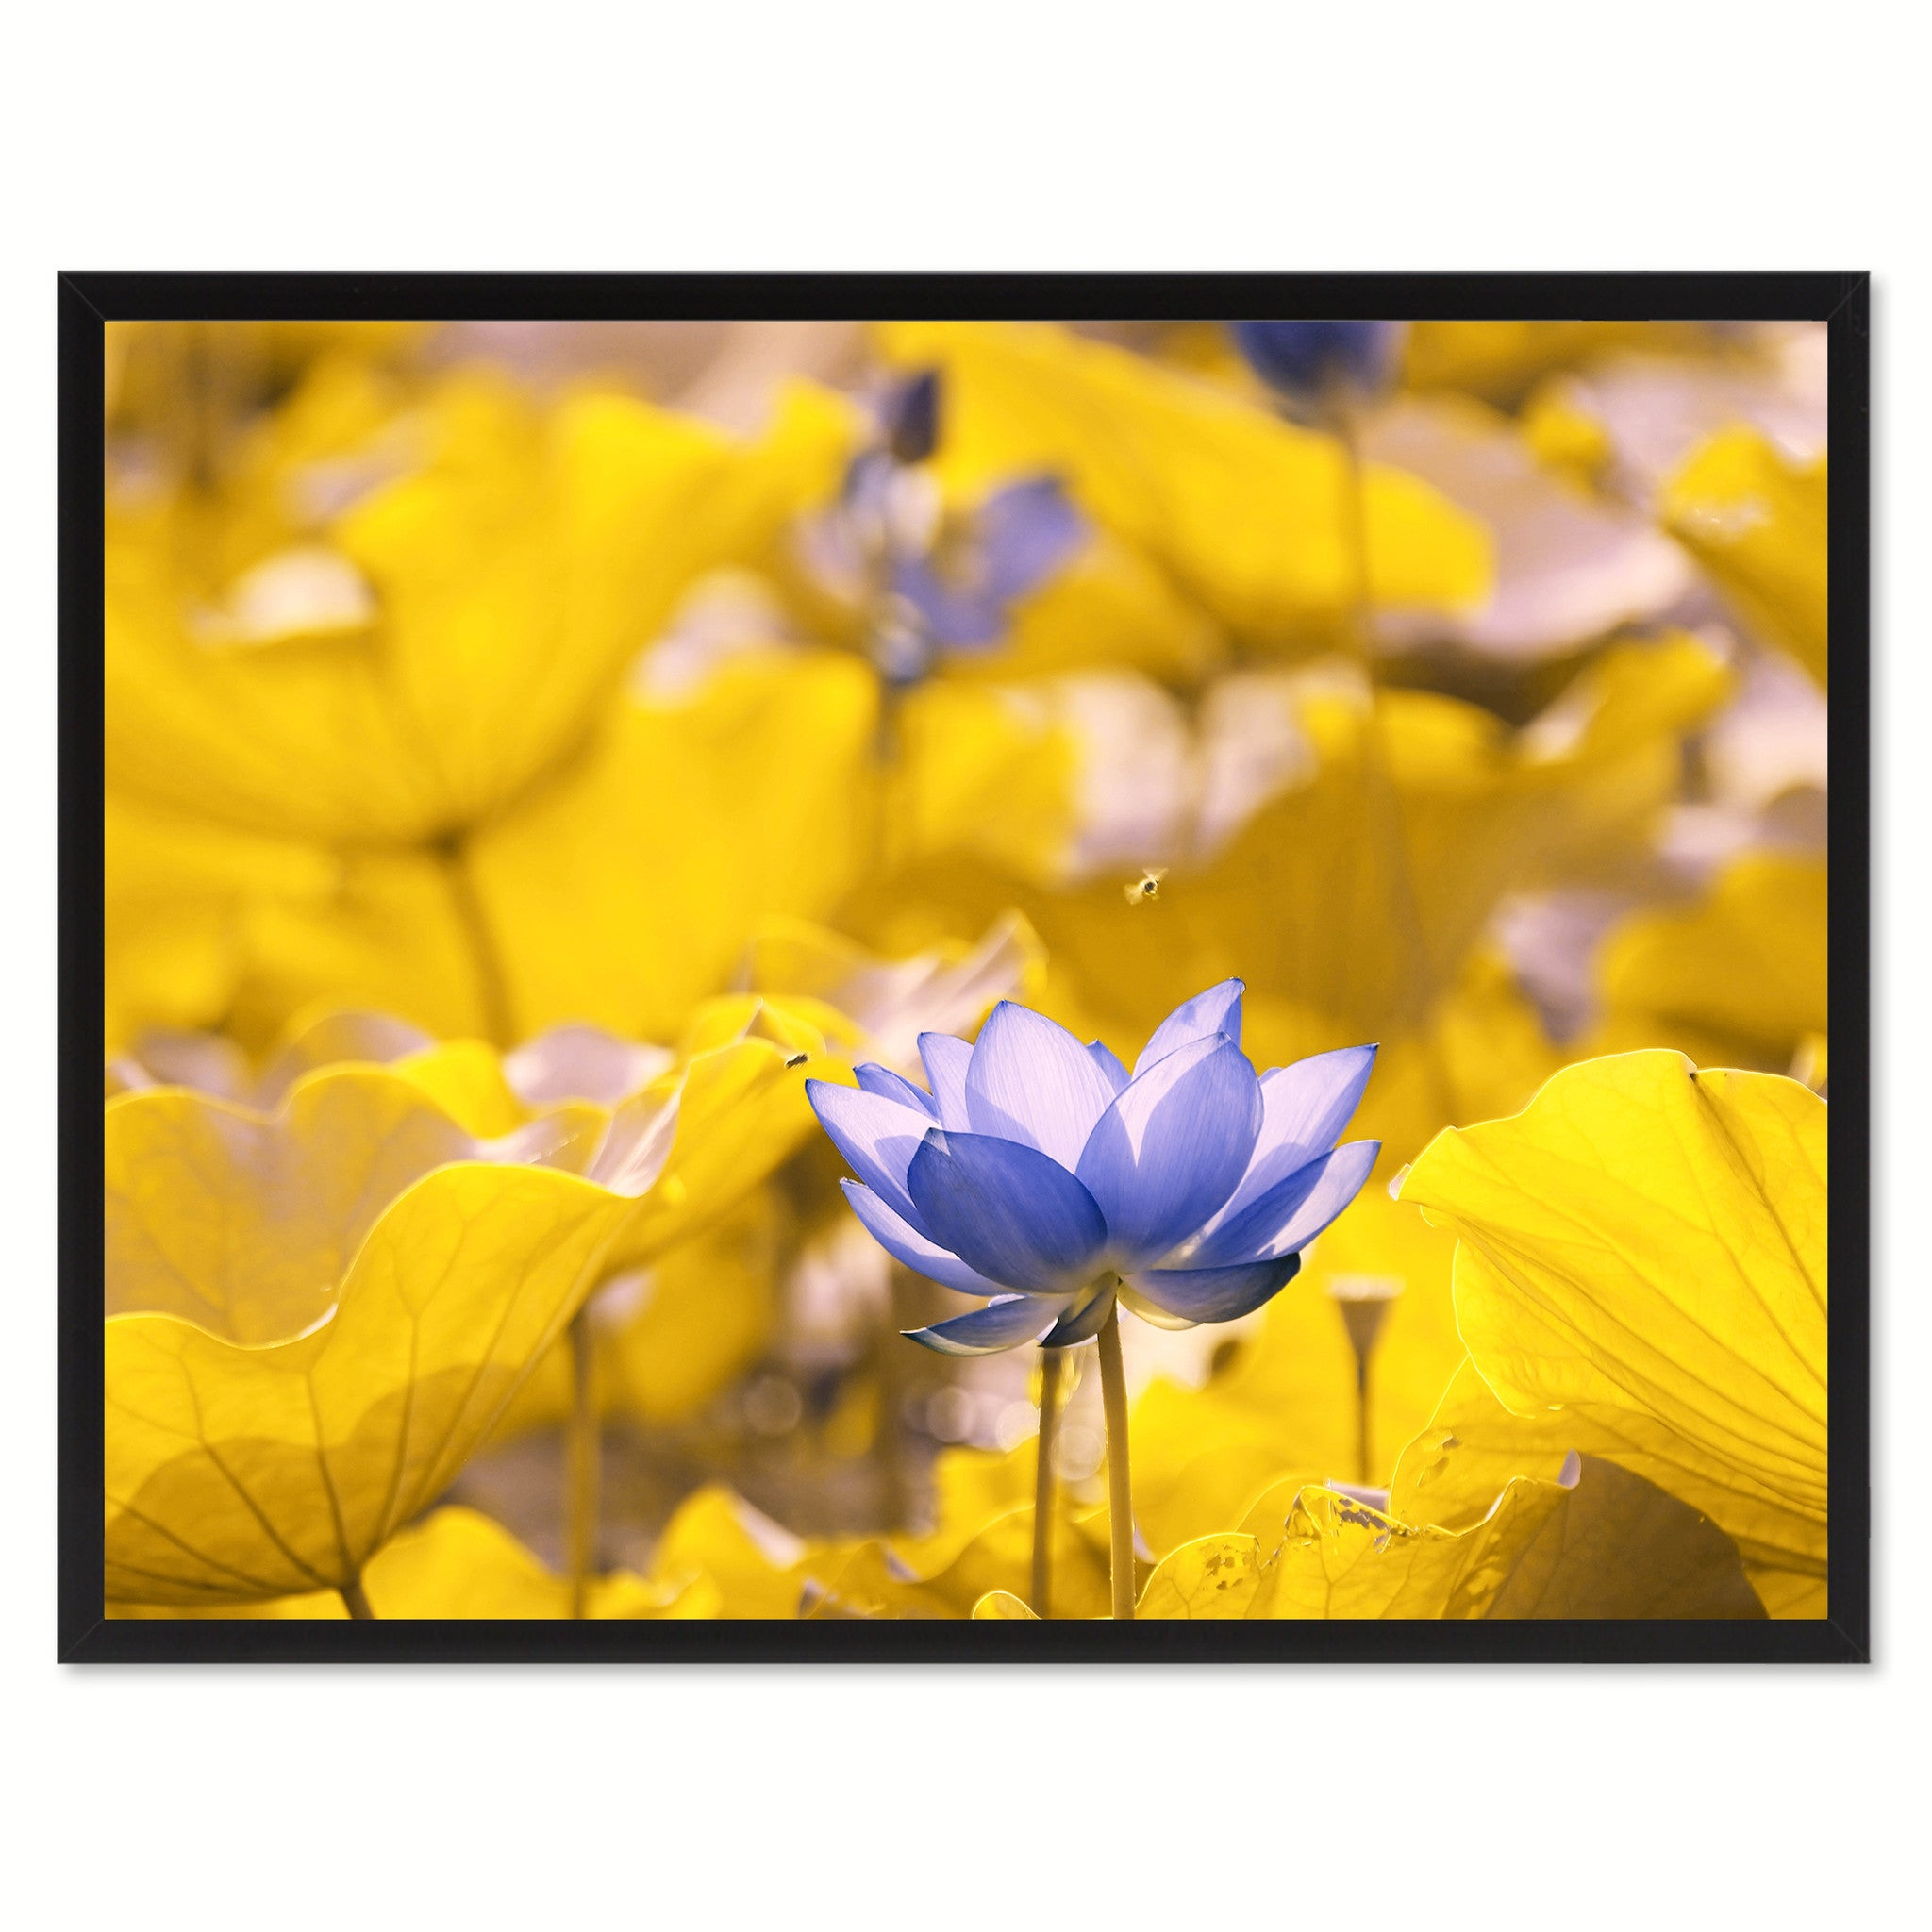 Yellow Lotus Flower Framed Canvas Print Home Décor Wall Art